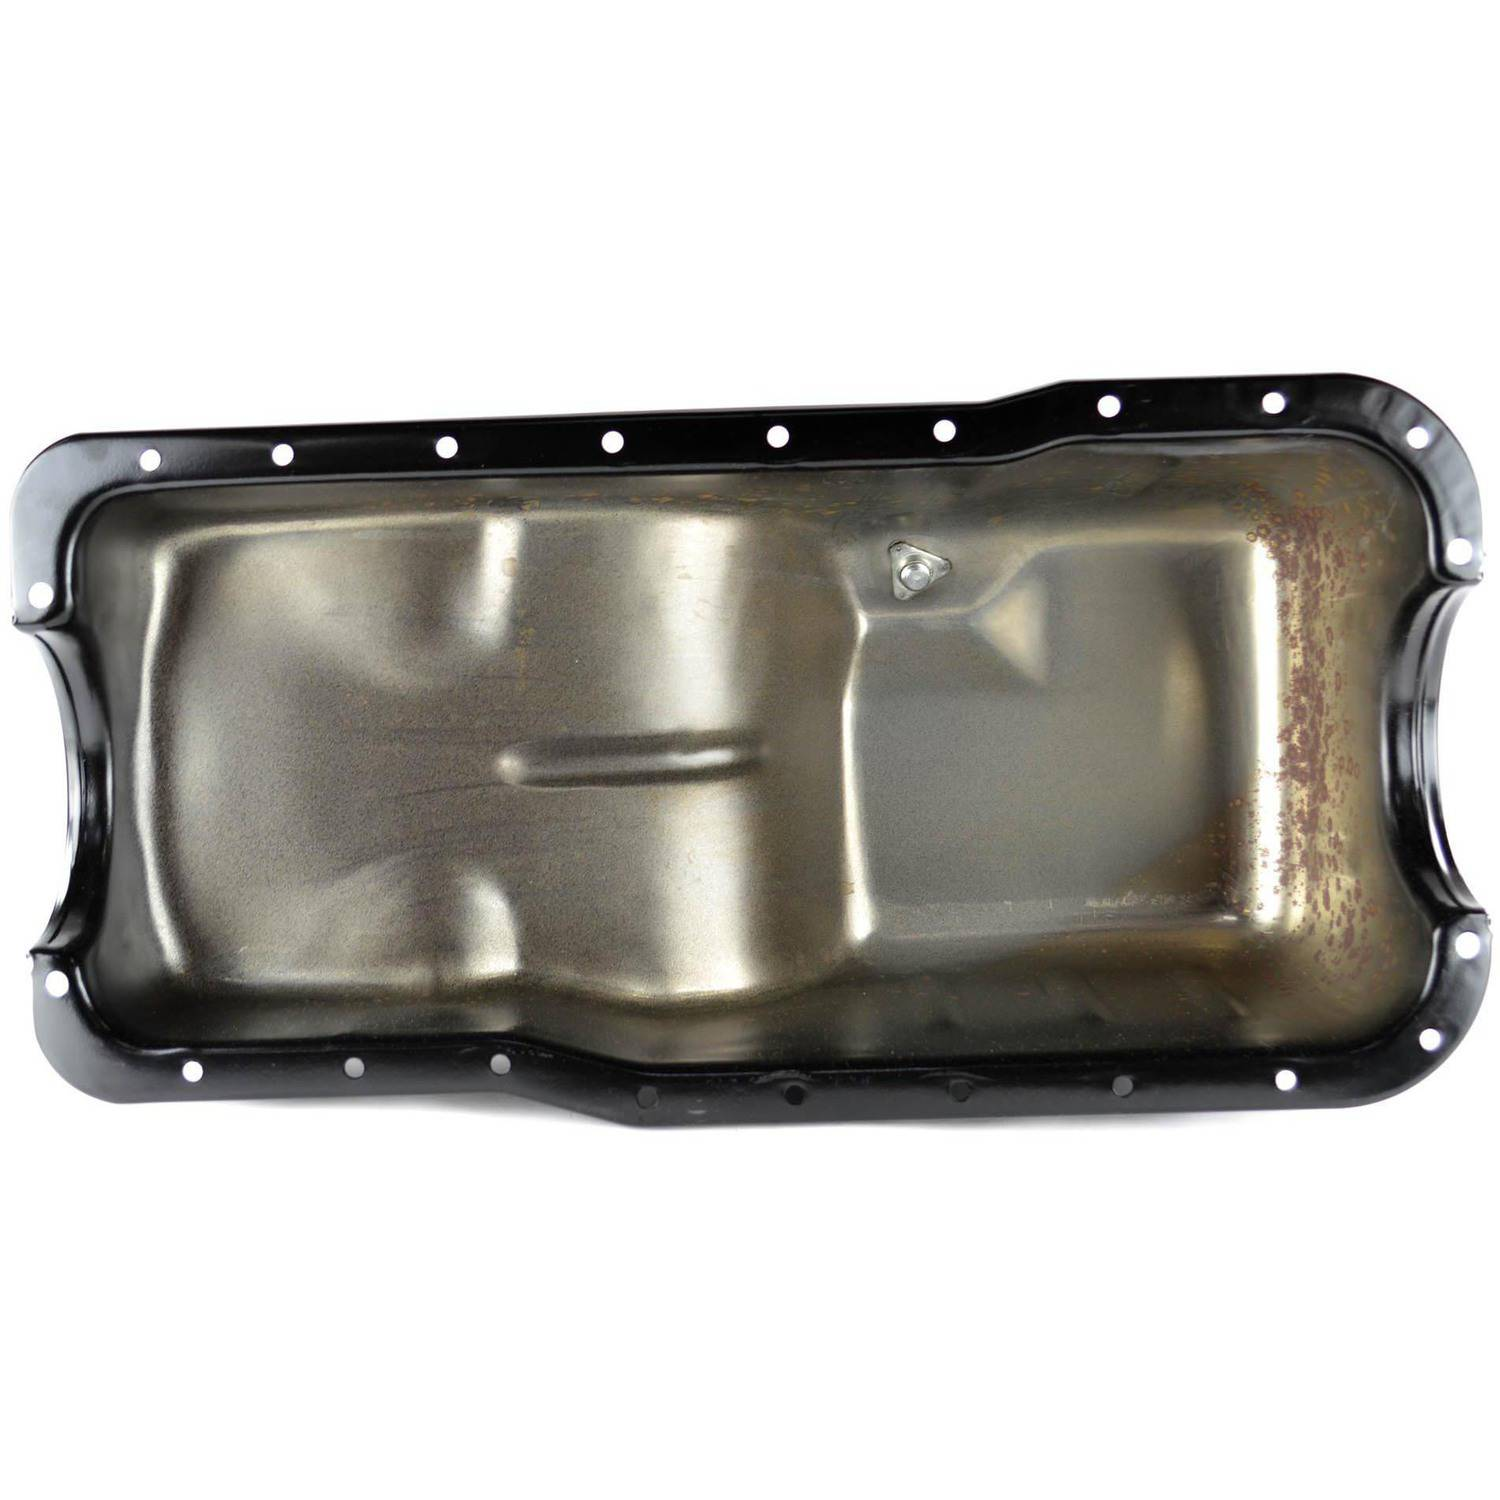 Spectra Premium F14C Fuel Tank for Ford Pickup